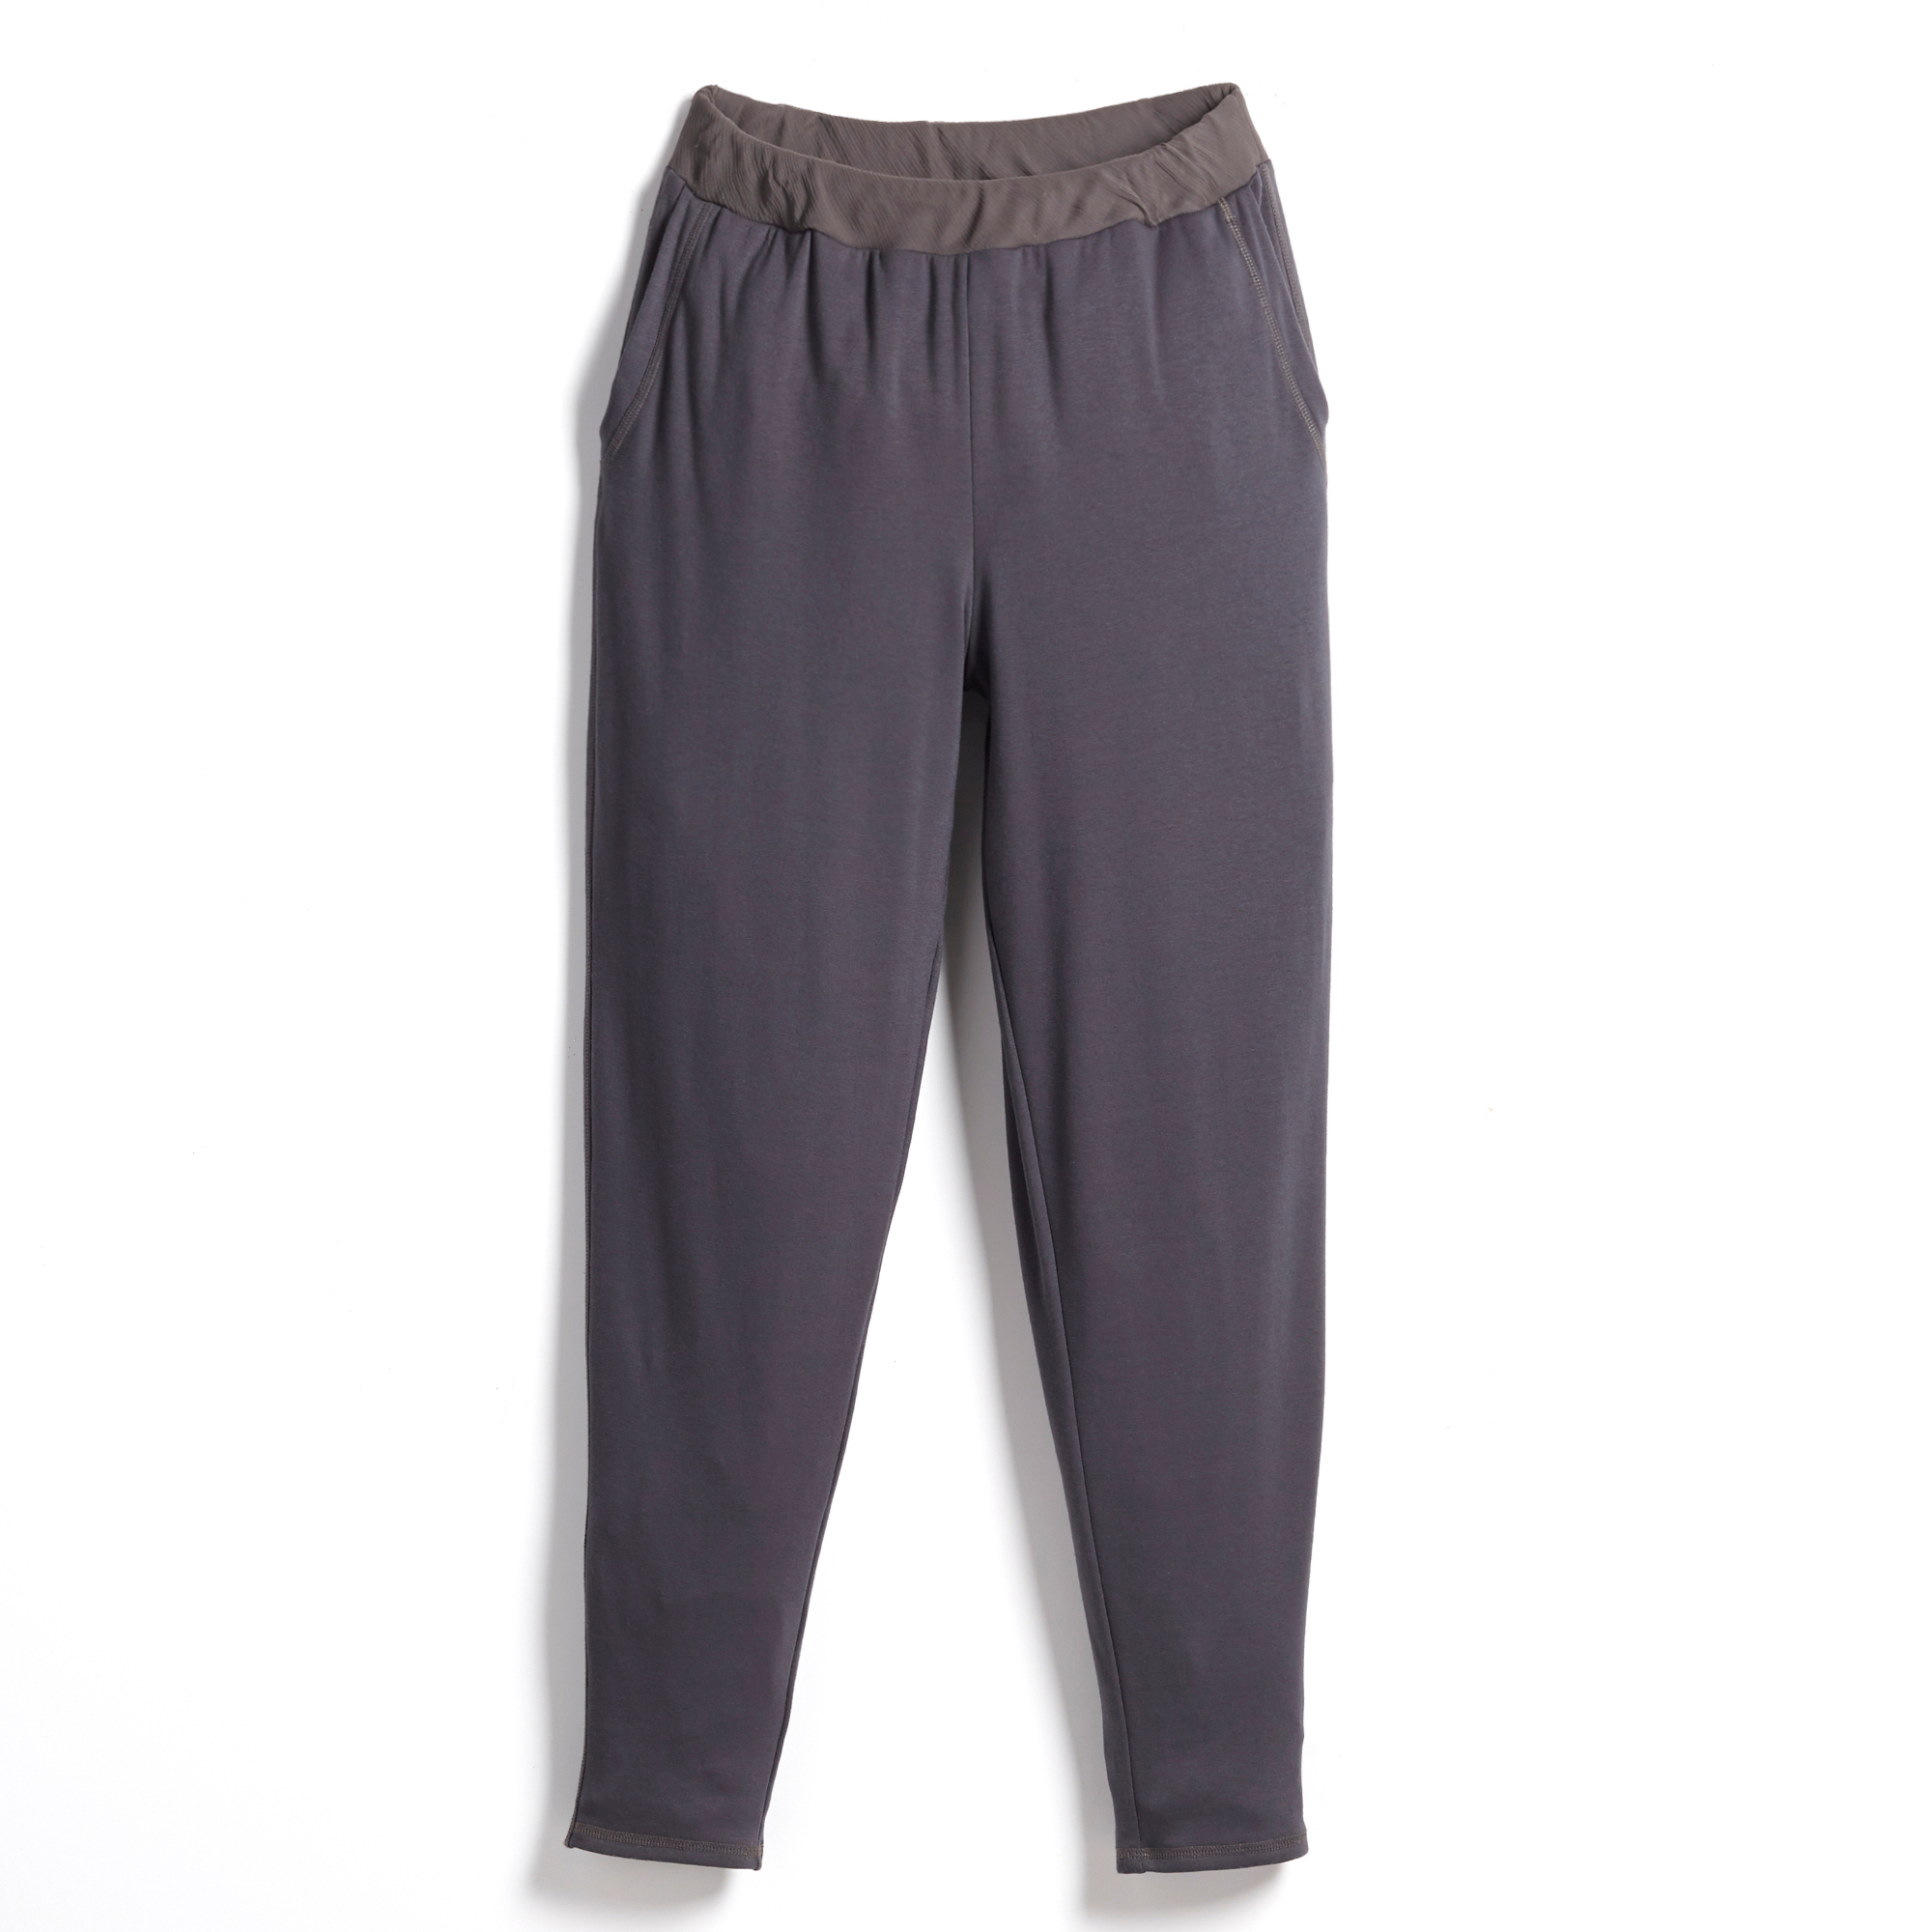 Pacifica Collection Pants